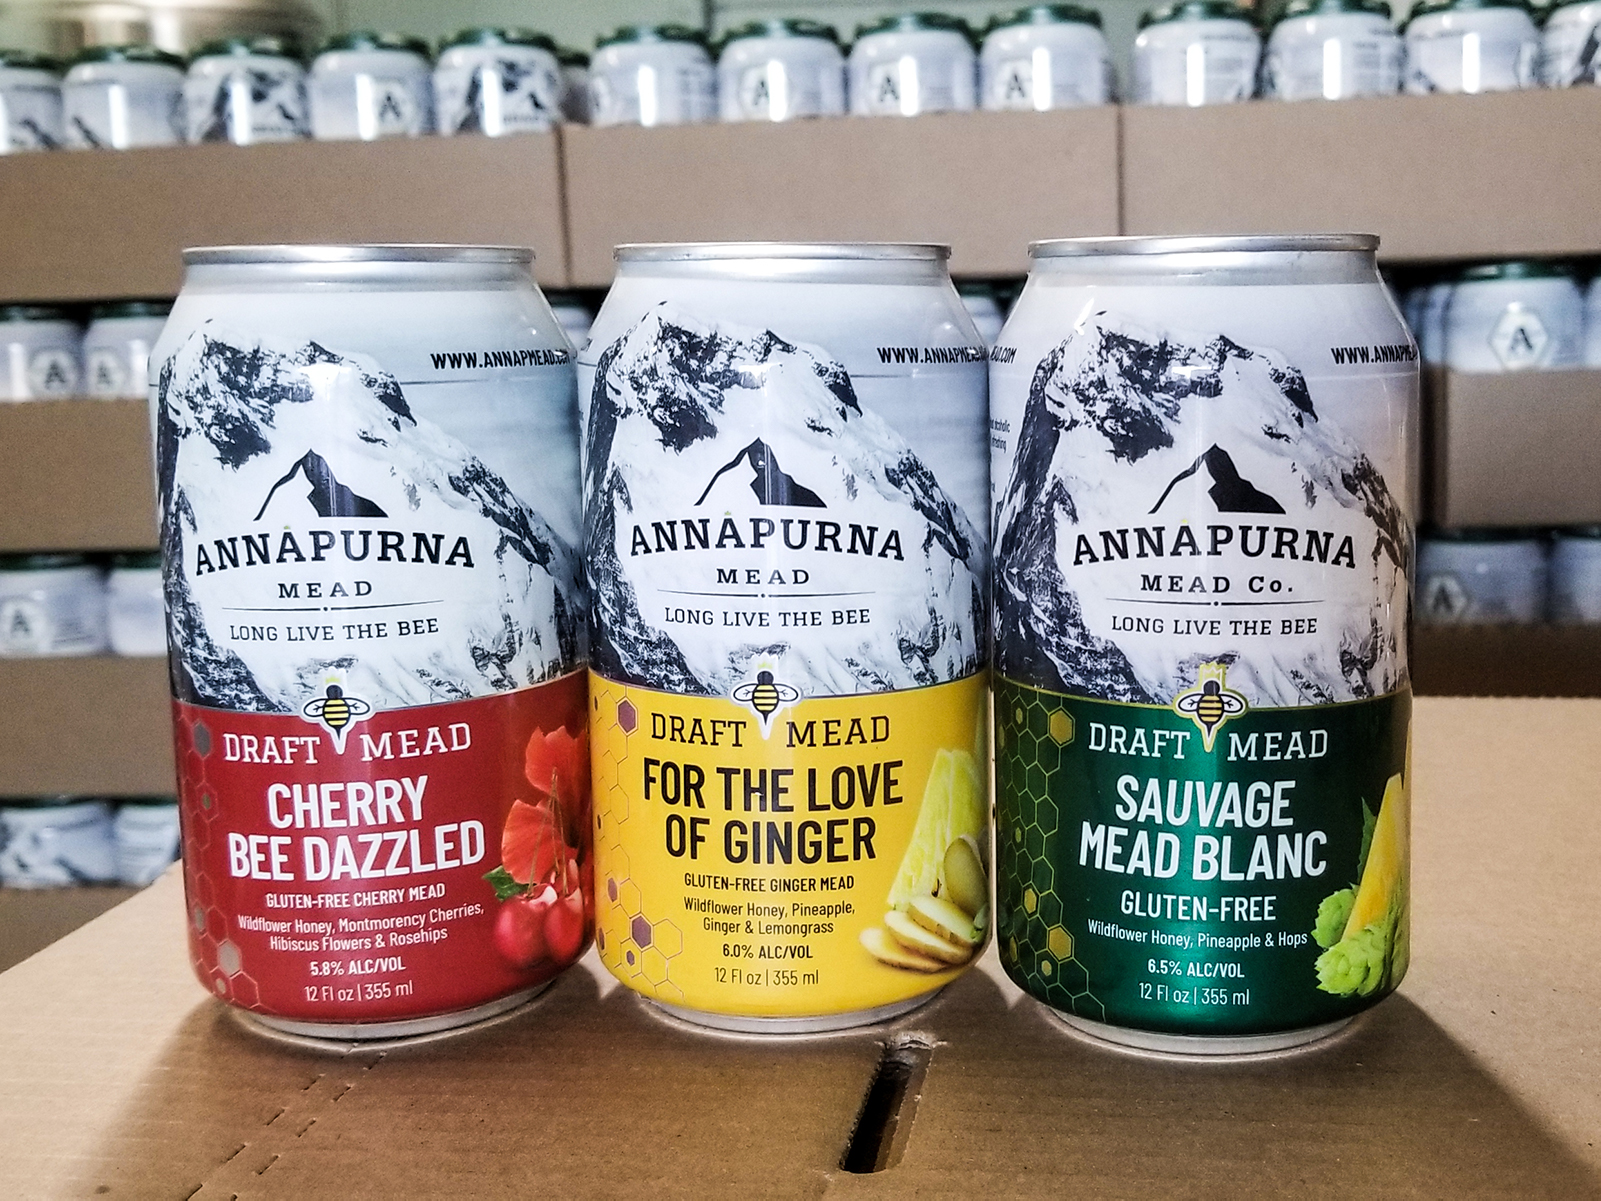 Annapurna Mead Co.'s canned session meads. Photo courtesy of Annapurna Mead Co.